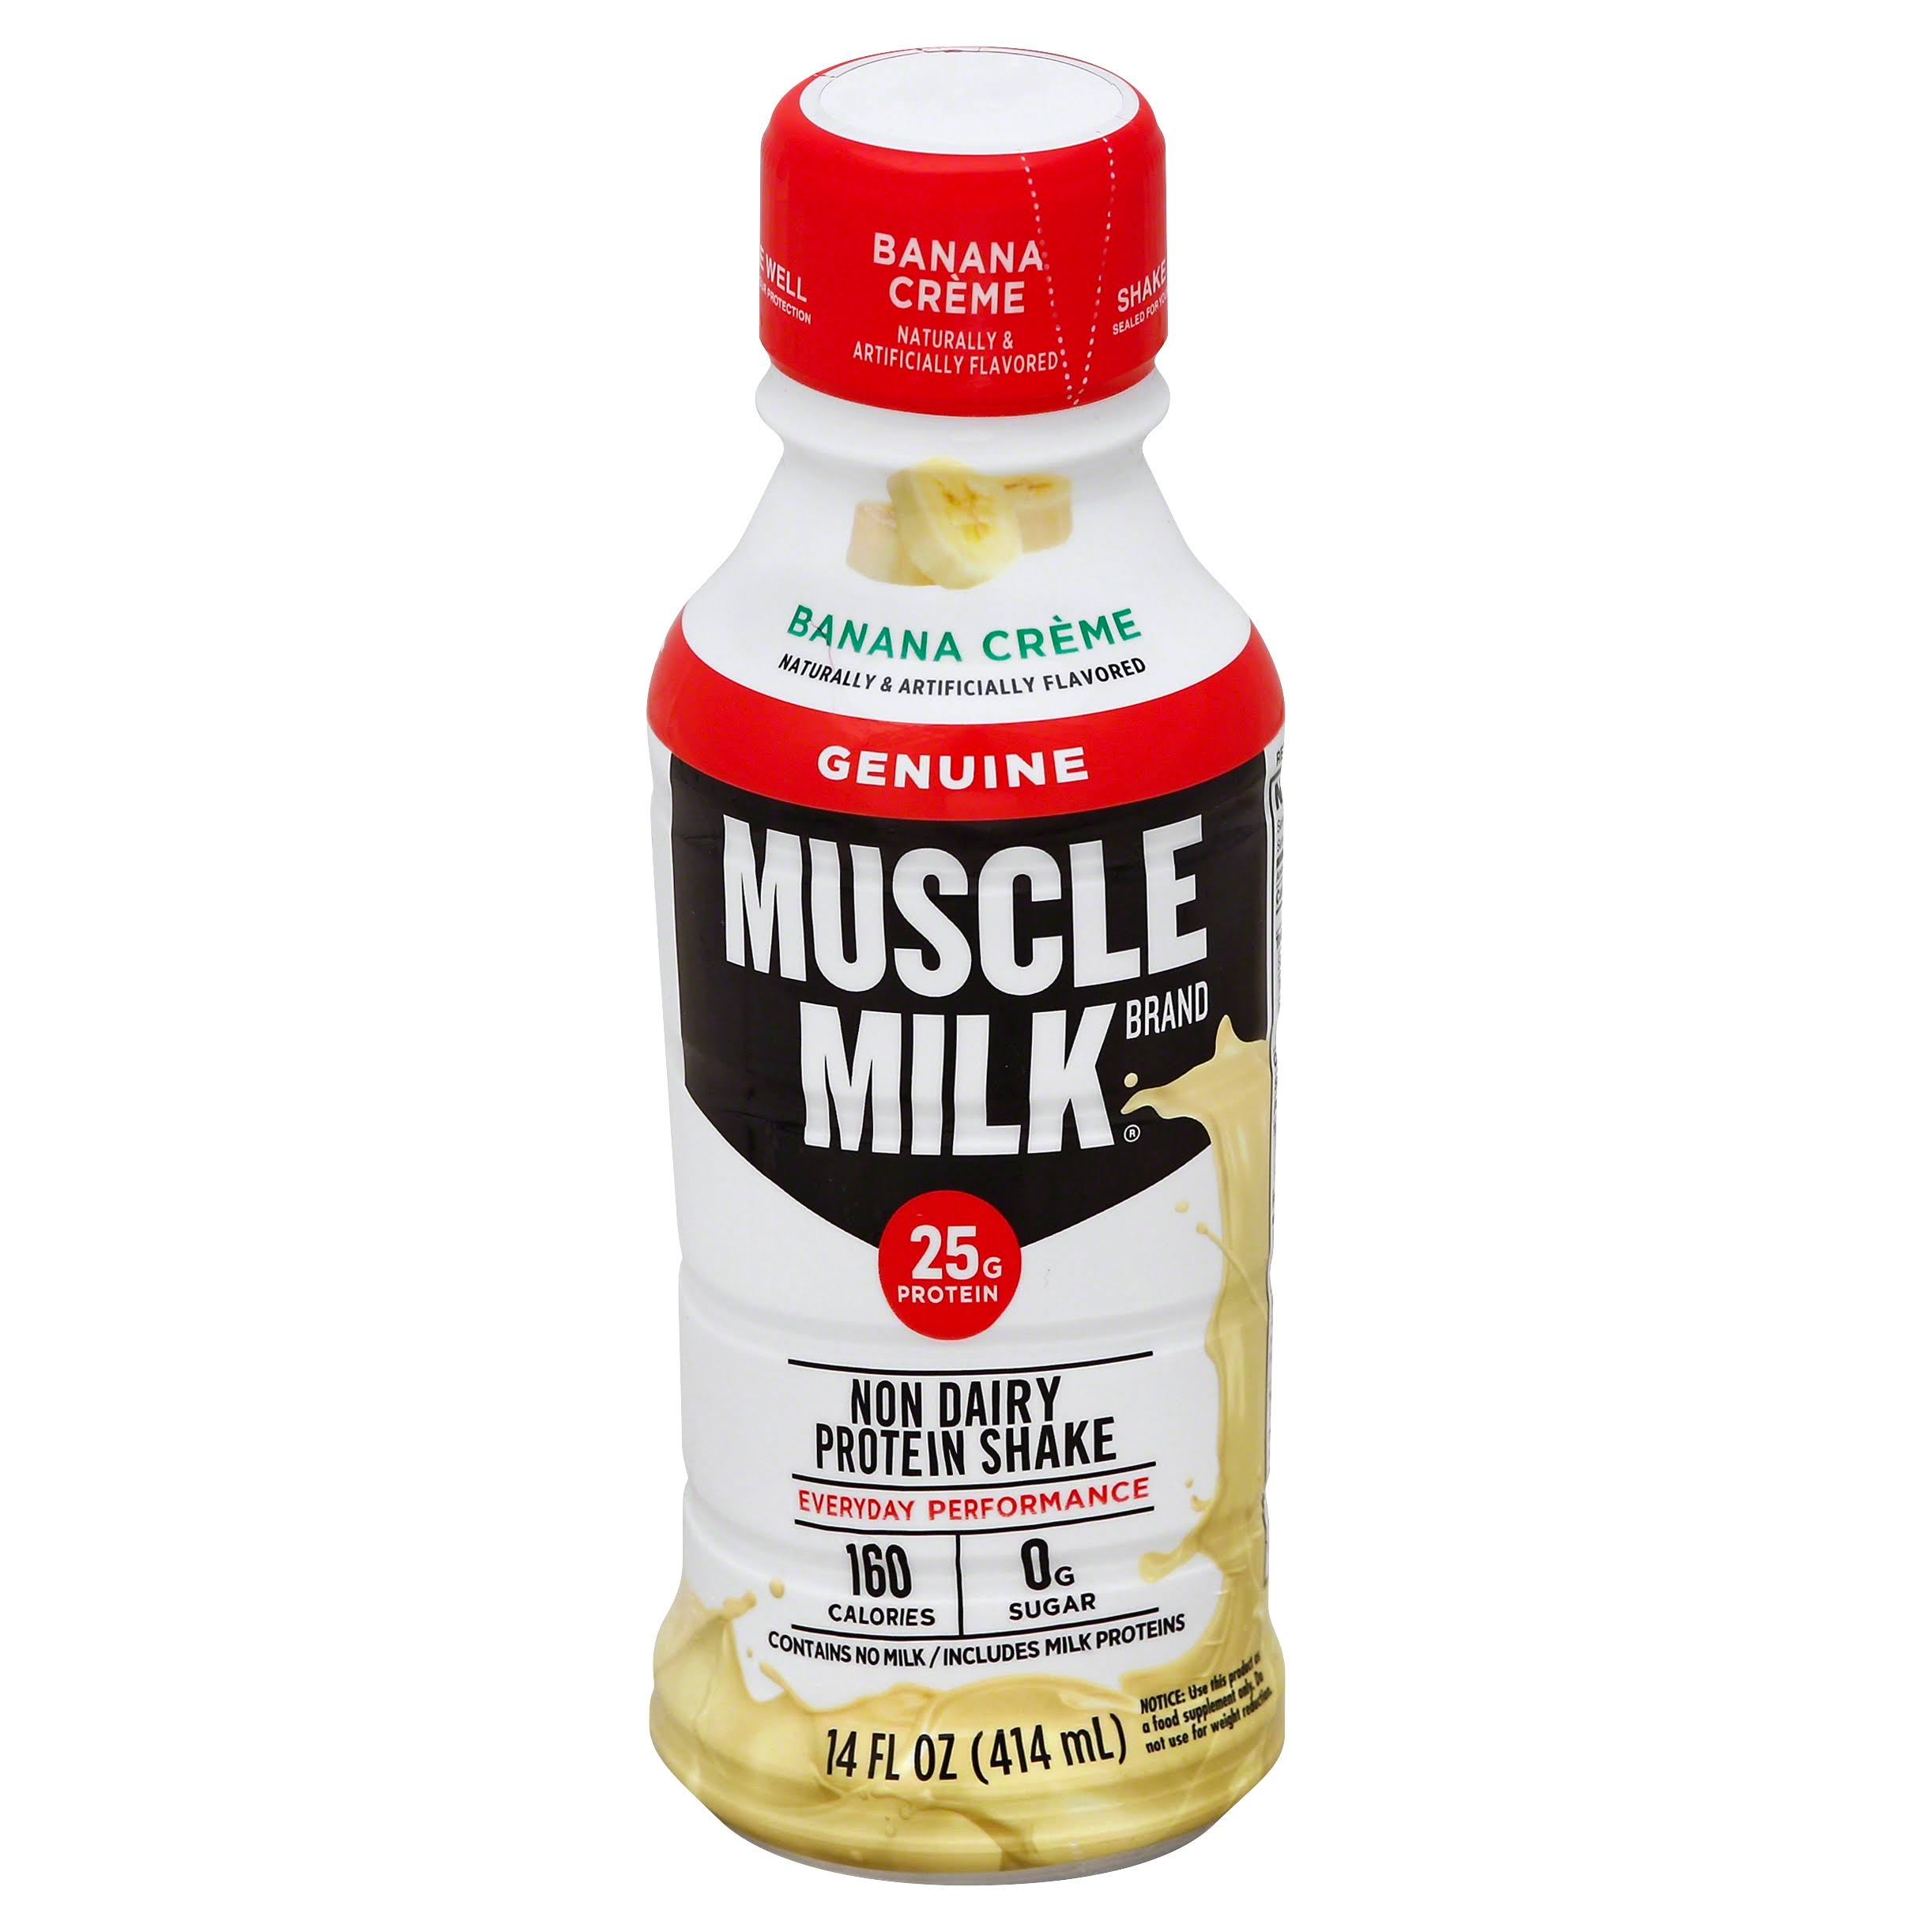 Muscle Milk - banana creme, 14oz